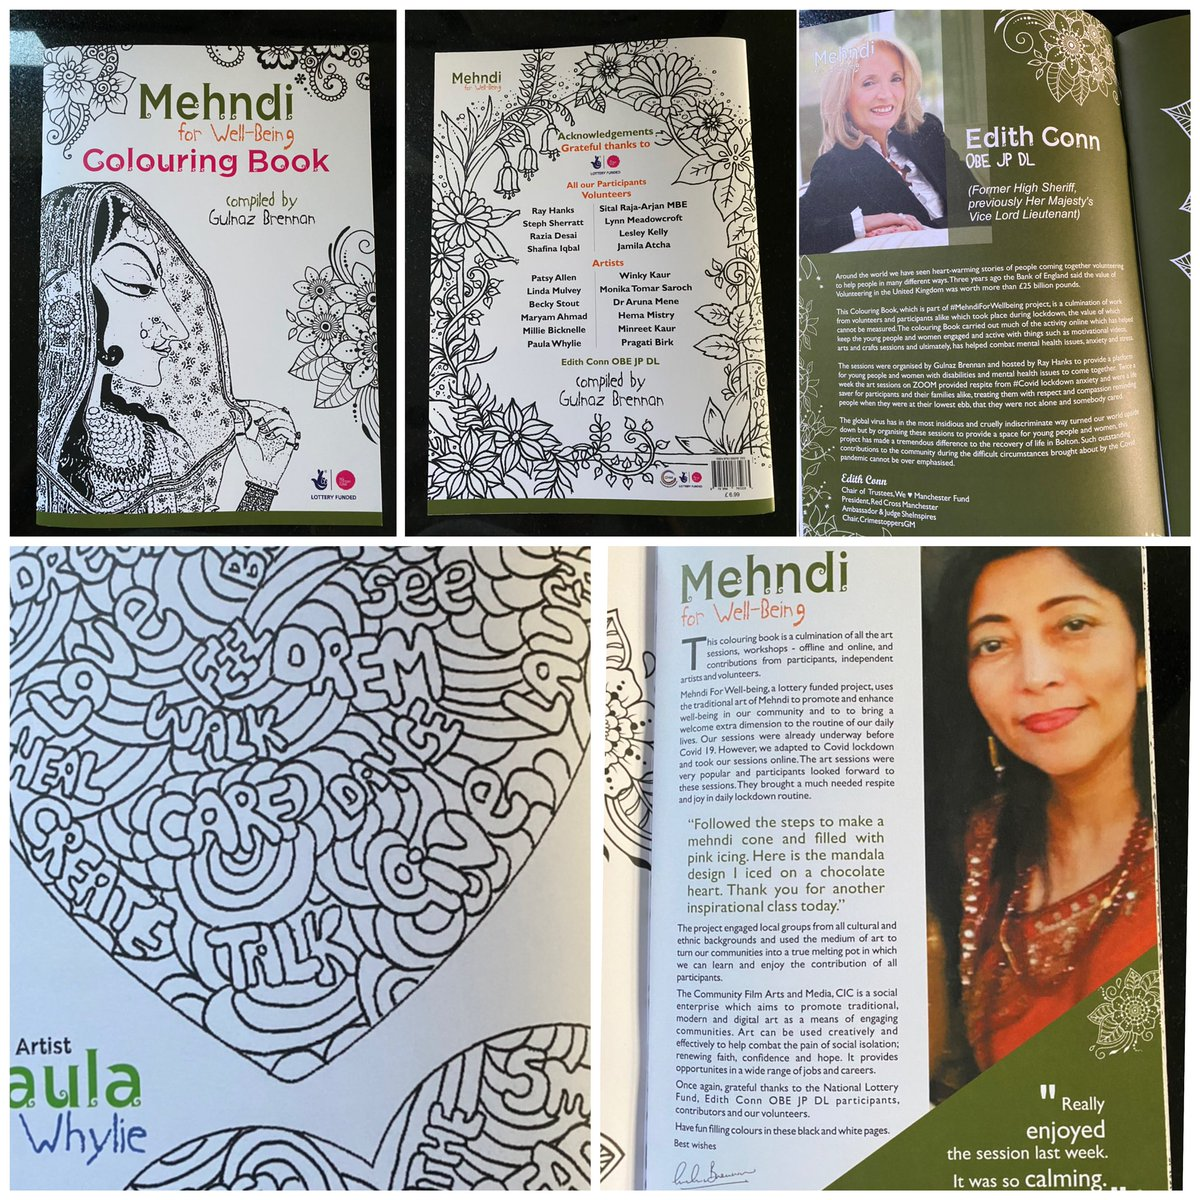 Look what's arrived in the post 💜 @SheInsprAwrds @edith_conn absolute honour to be included in this project. My doodle is the first in the book and is special to me as I created it whilst doodling with my mum when she was in @boltonhospice #wellbeing #Mehndi 💜